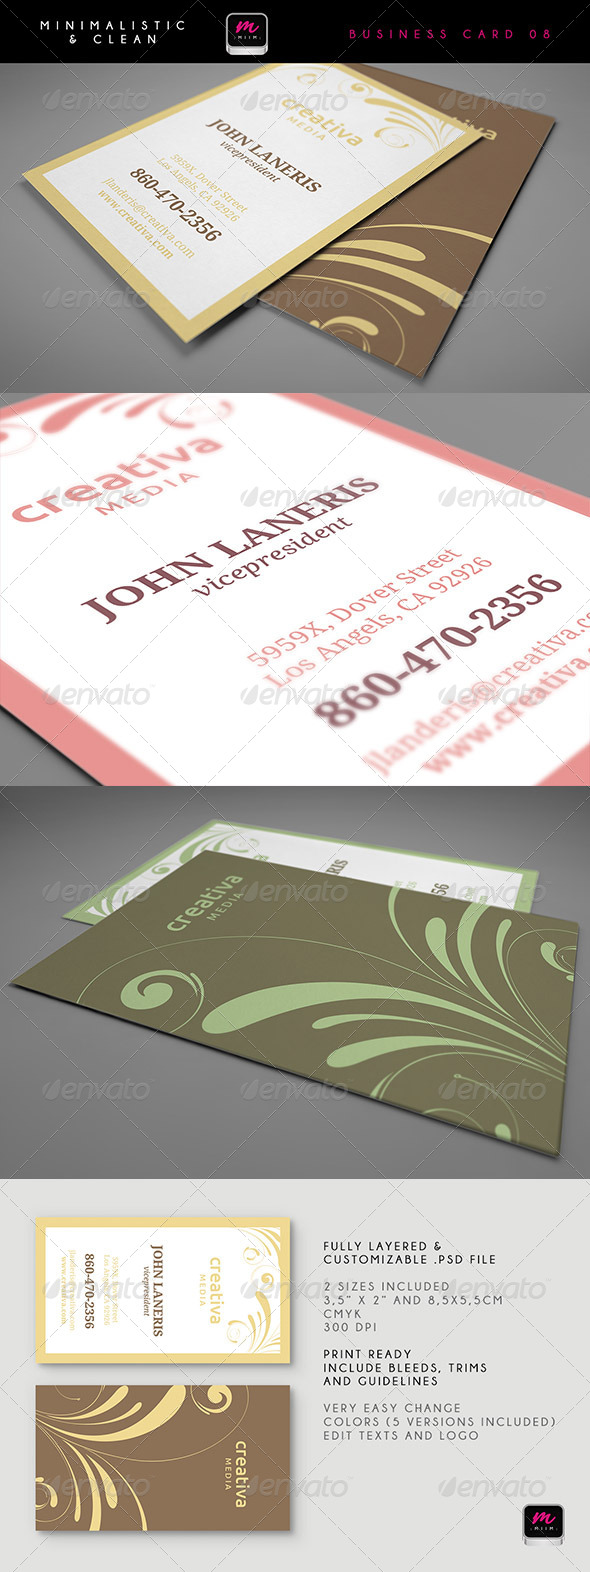 Clean Business Card Template 08 - Corporate Business Cards